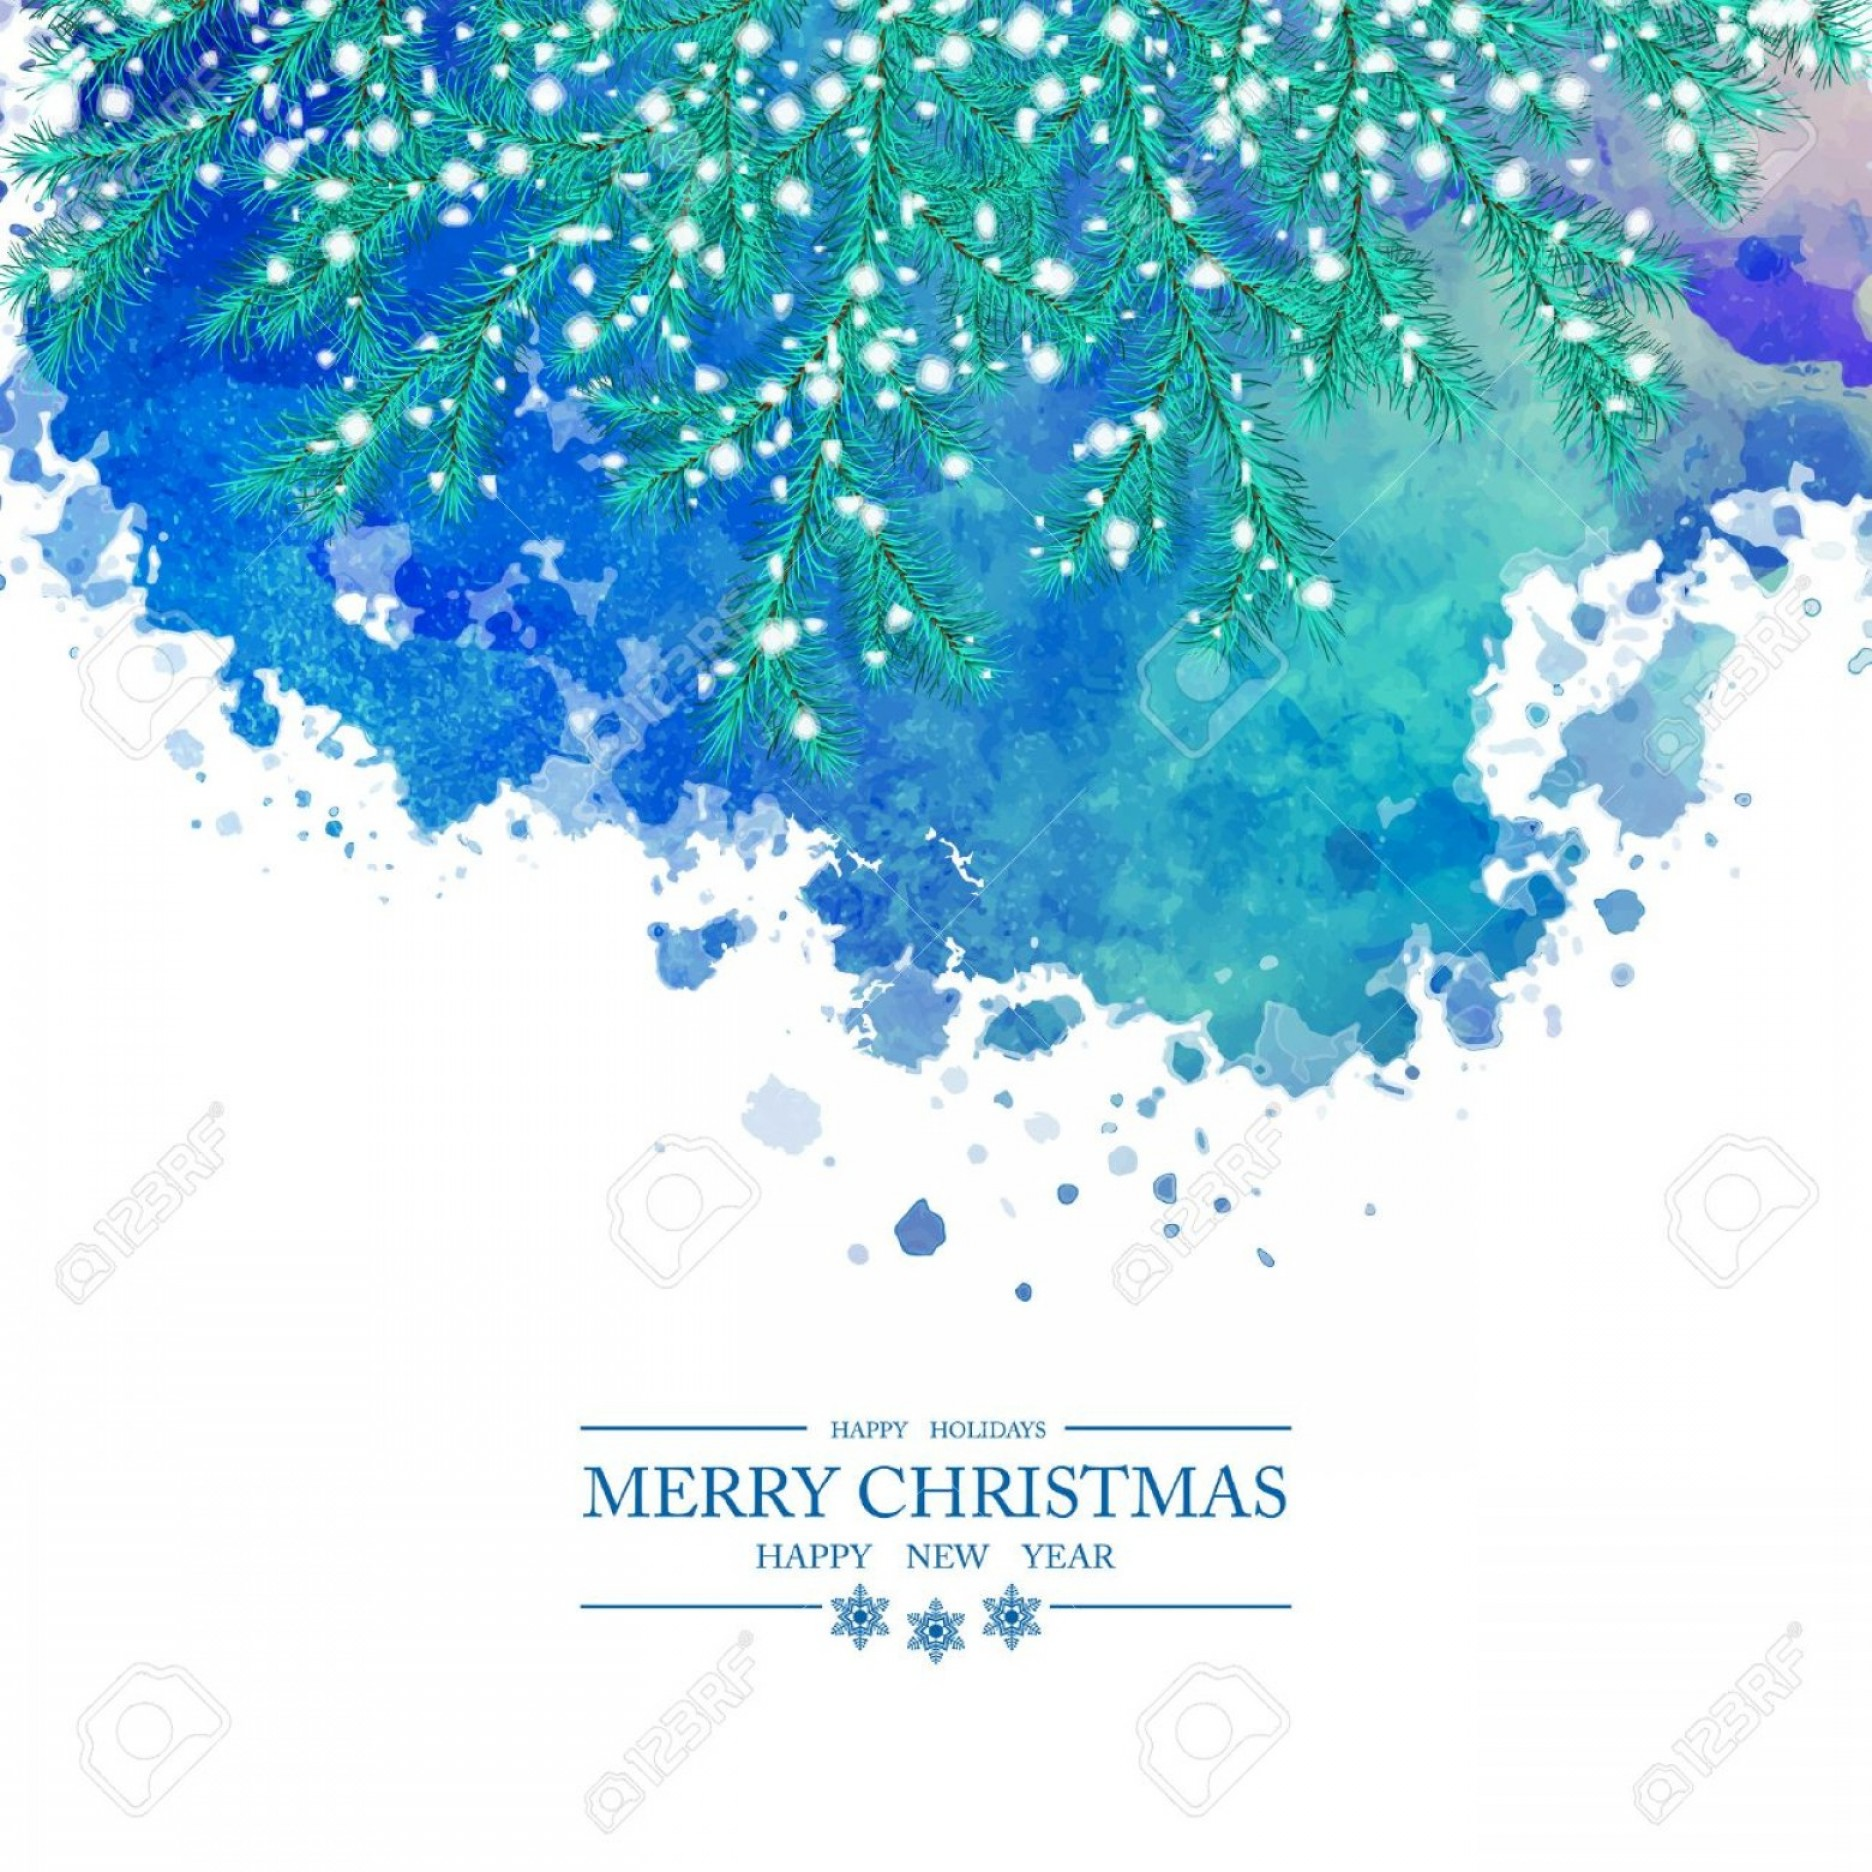 Watercolor Vector Free Designs: Photostock Vector Christmas Watercolor Vector Background Snow Covered Spruce Branches Abstract Painted Blot Merry Chri